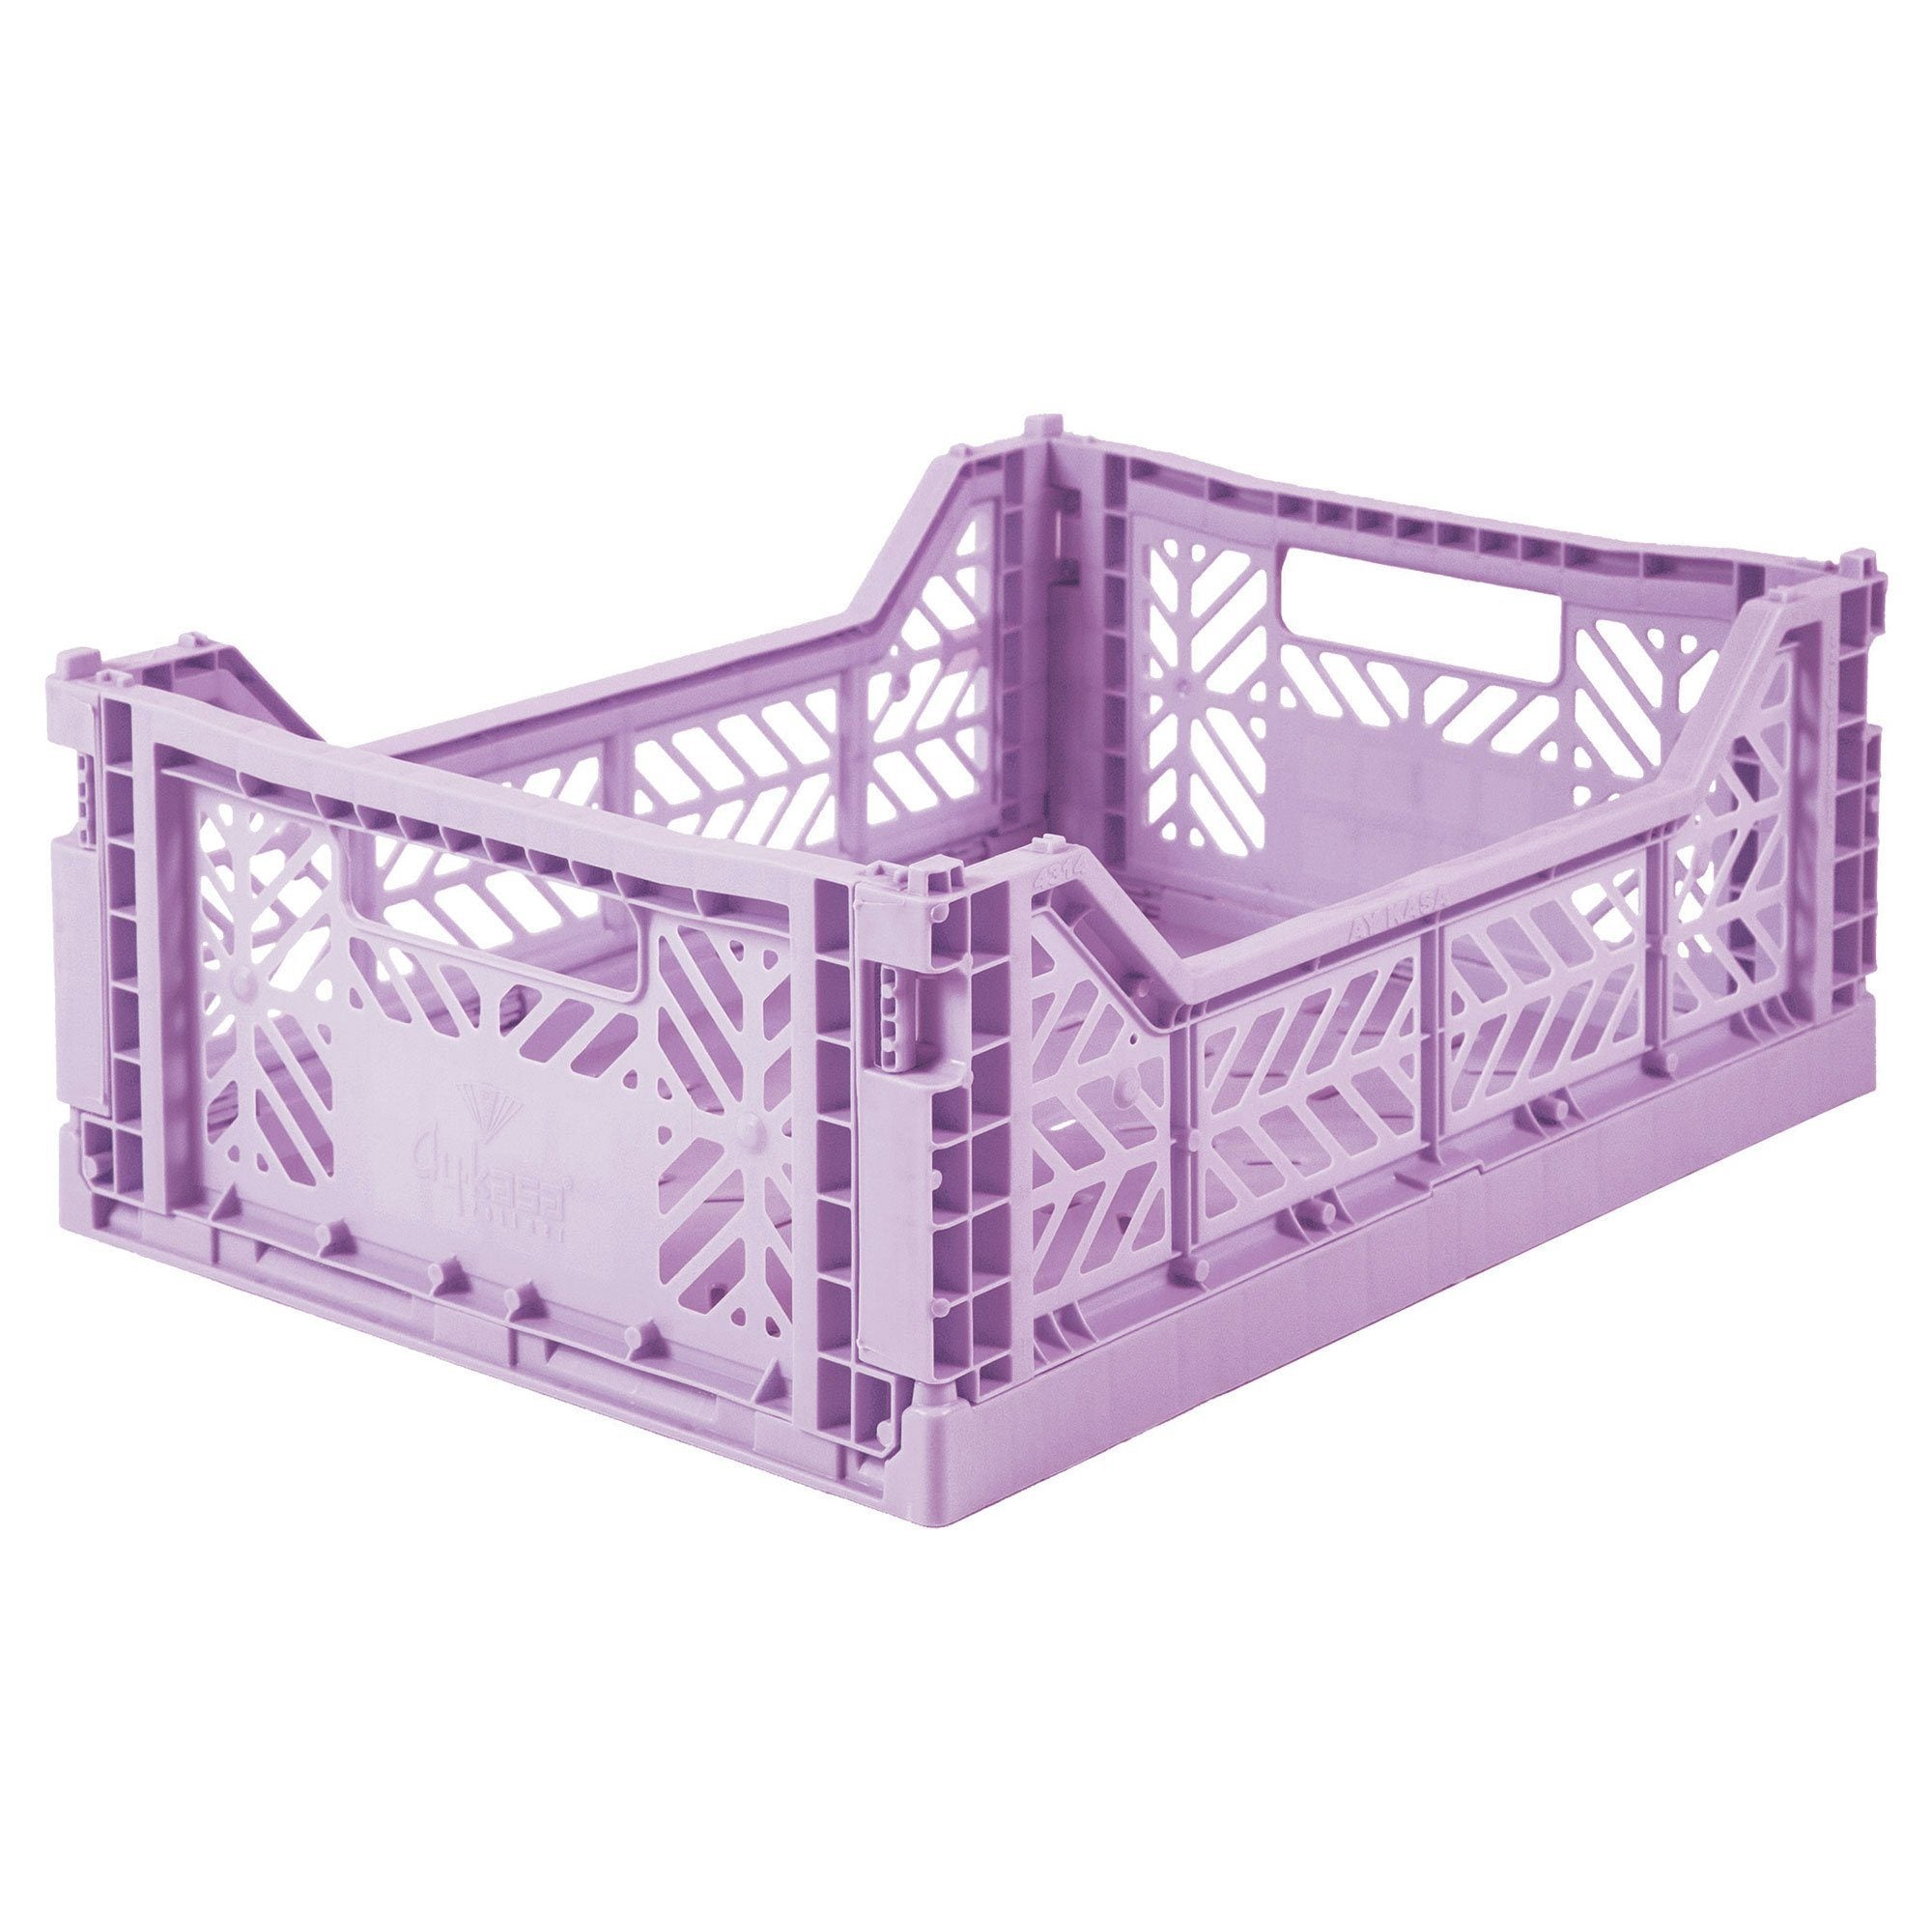 Lillemor Lifestyle Midi Folding Crate (Orchid